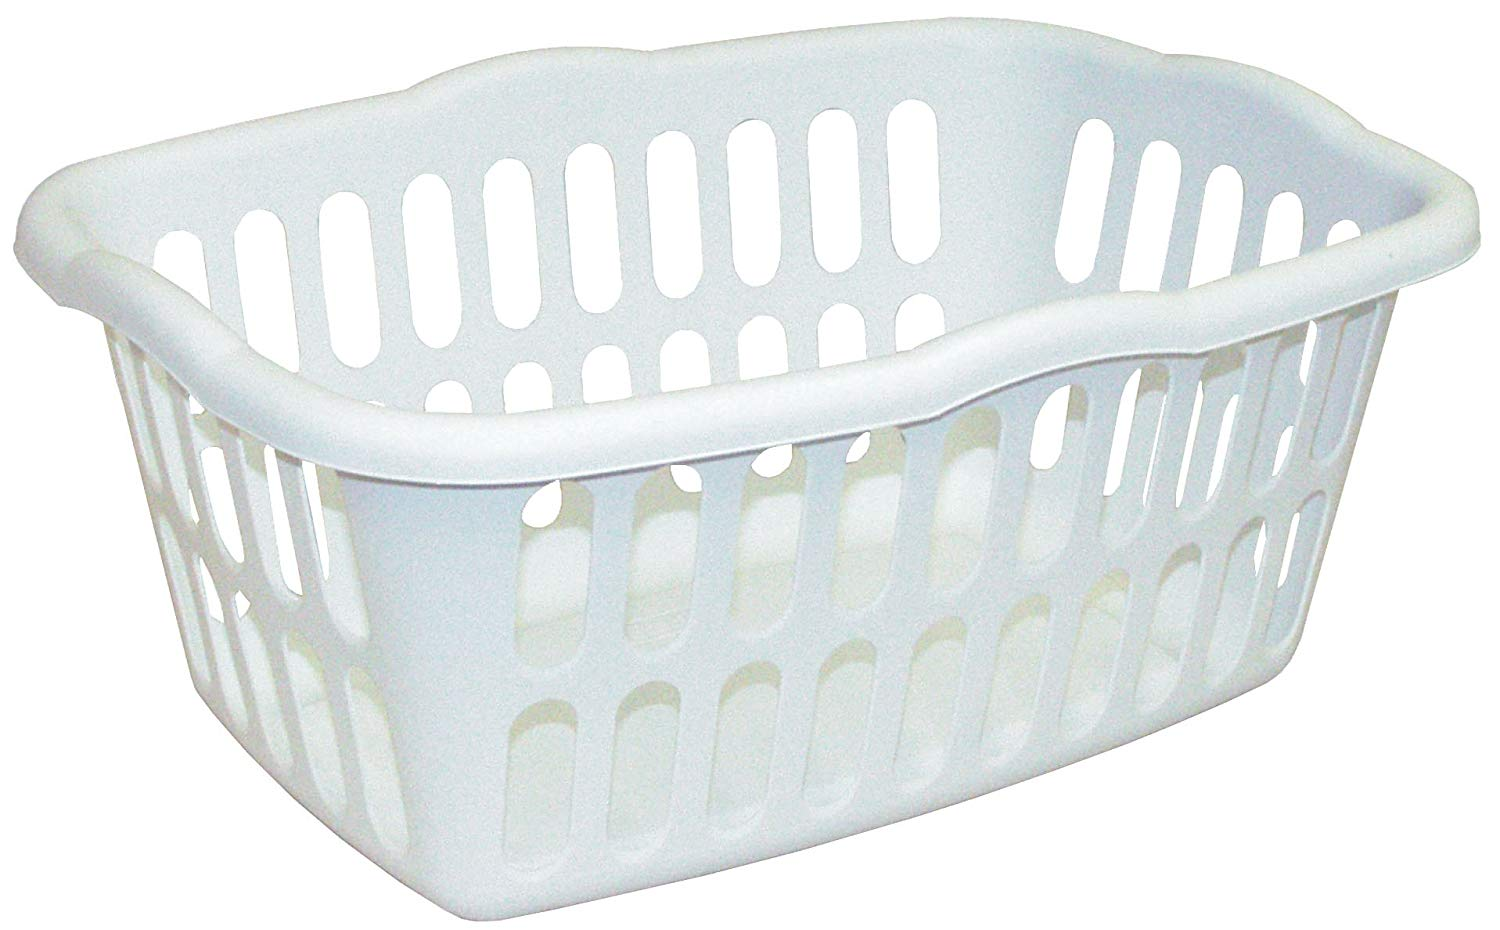 Laundry Basket amazon.com: sterilite rectangular laundry basket, white: home u0026 kitchen PSHQNTO